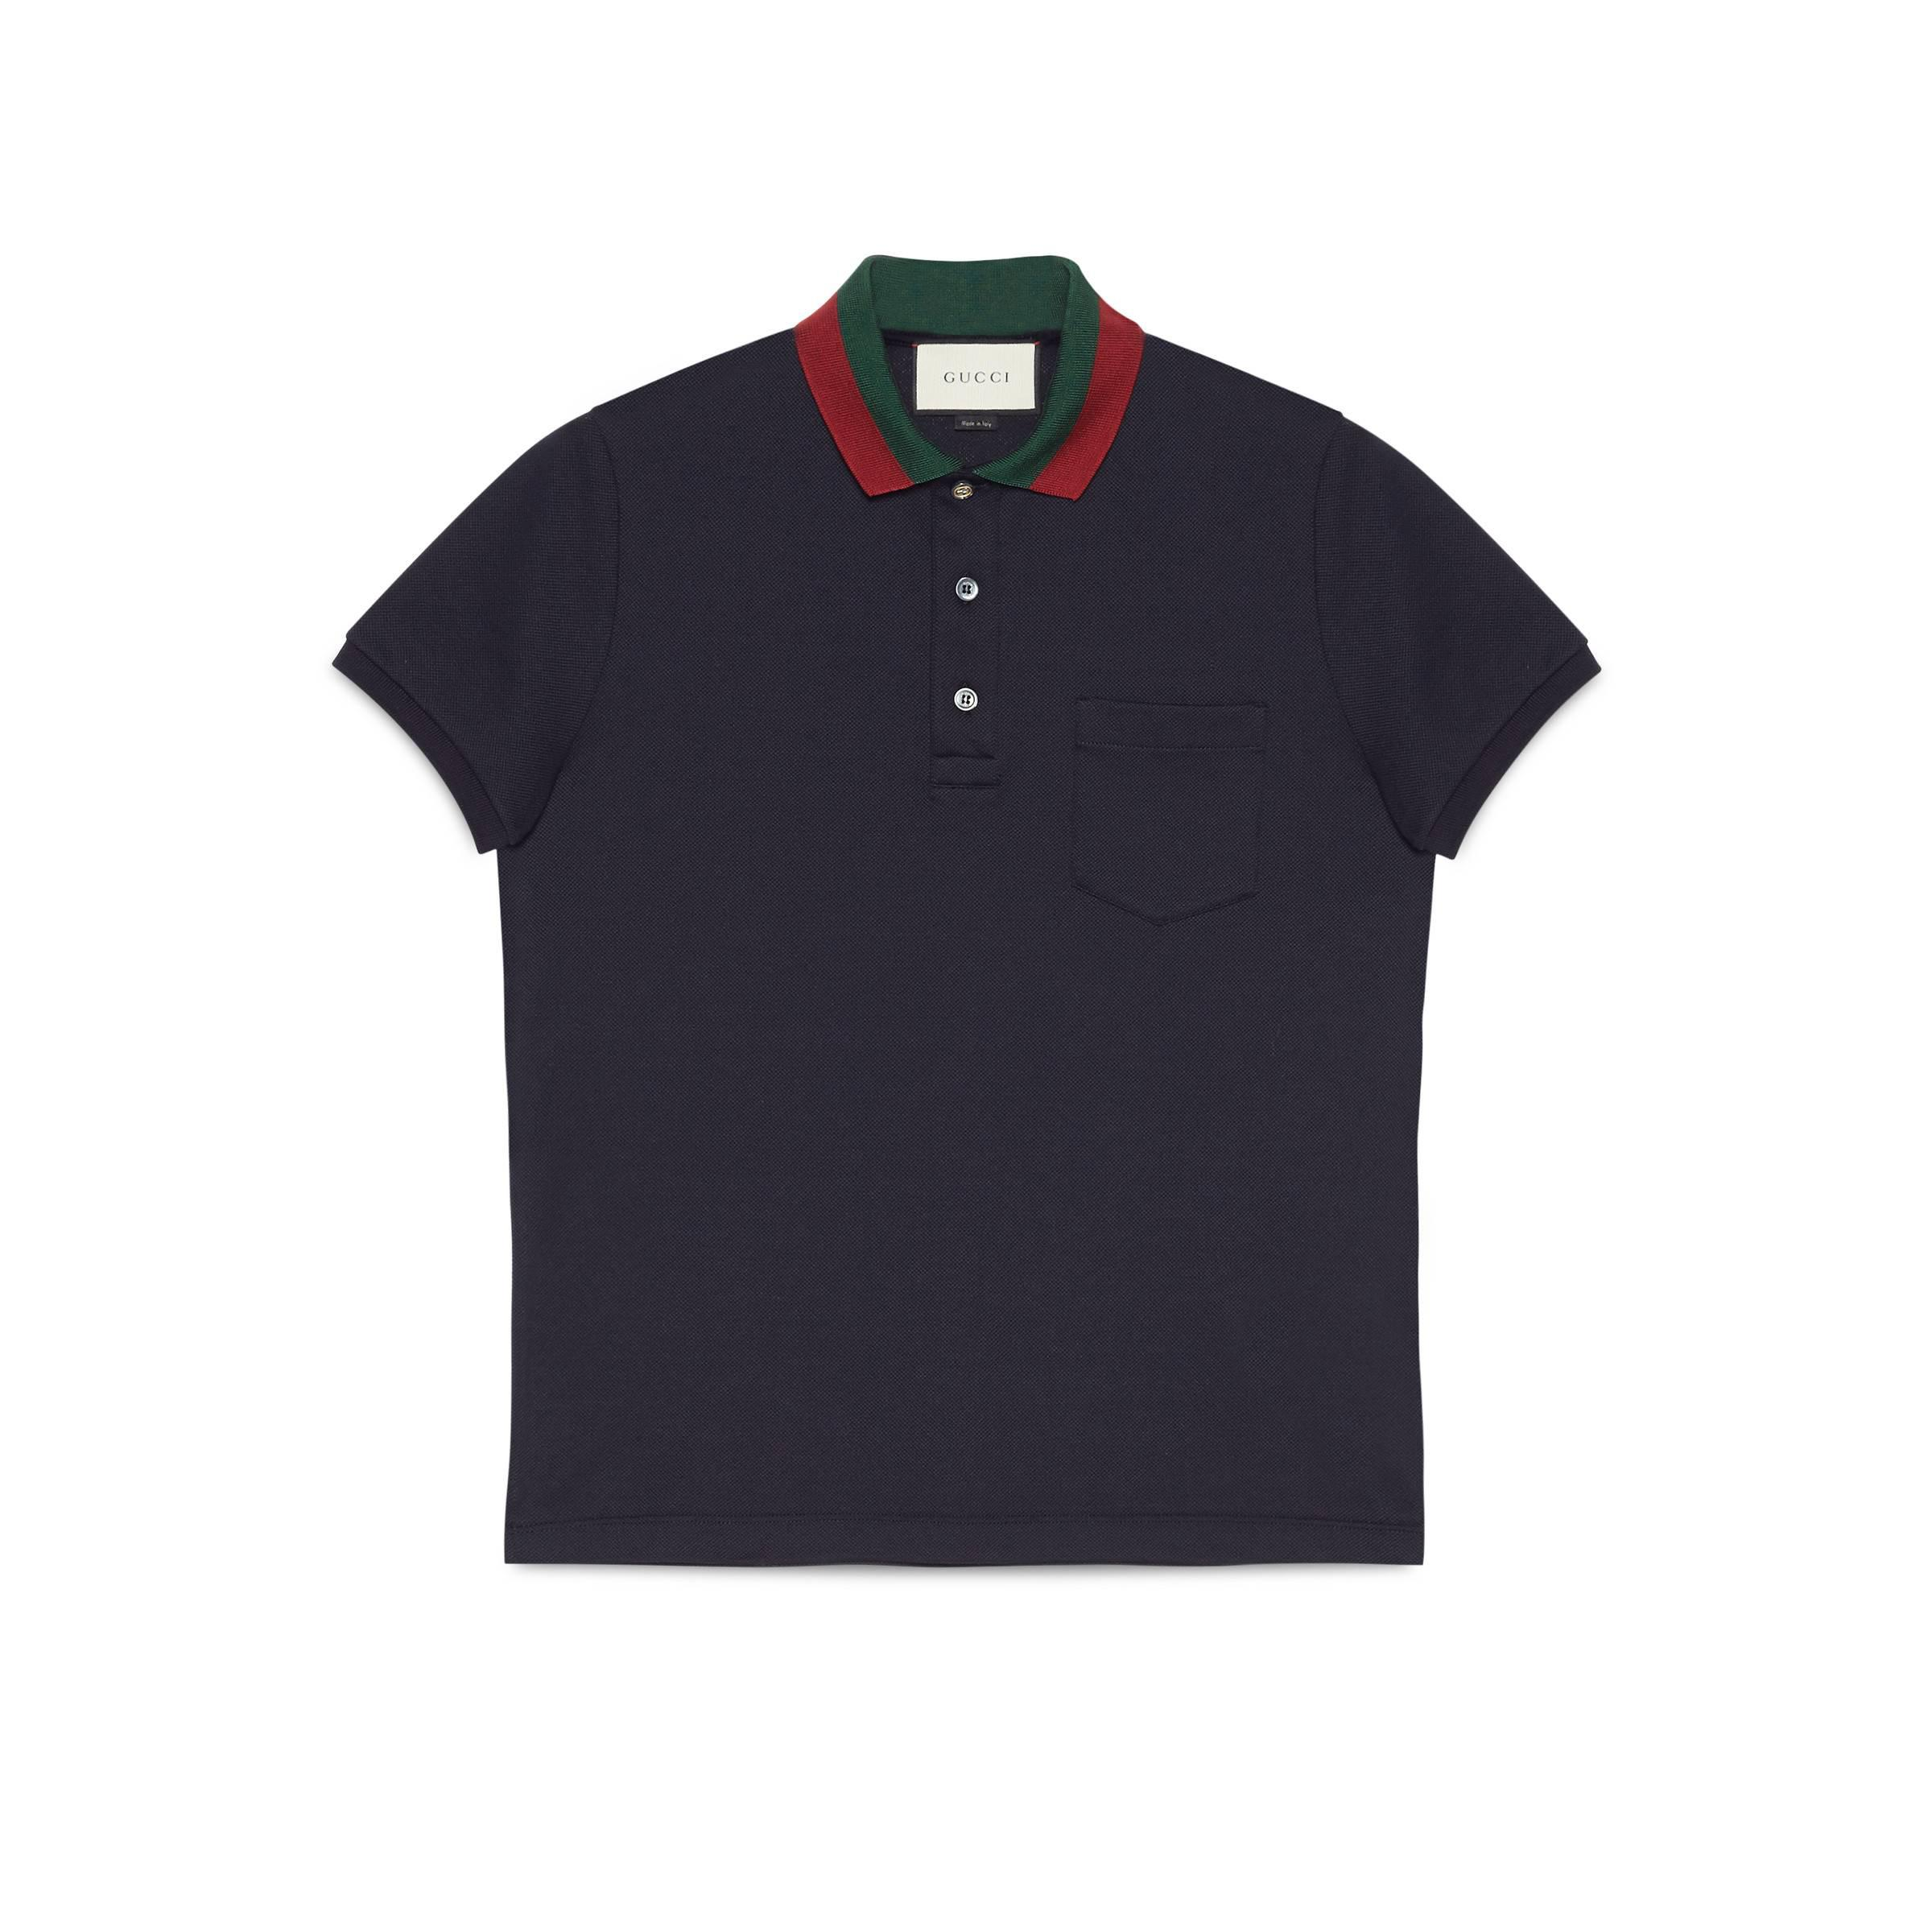 61318210d Gucci - Blue Cotton Polo With Web Collar for Men - Lyst. View fullscreen